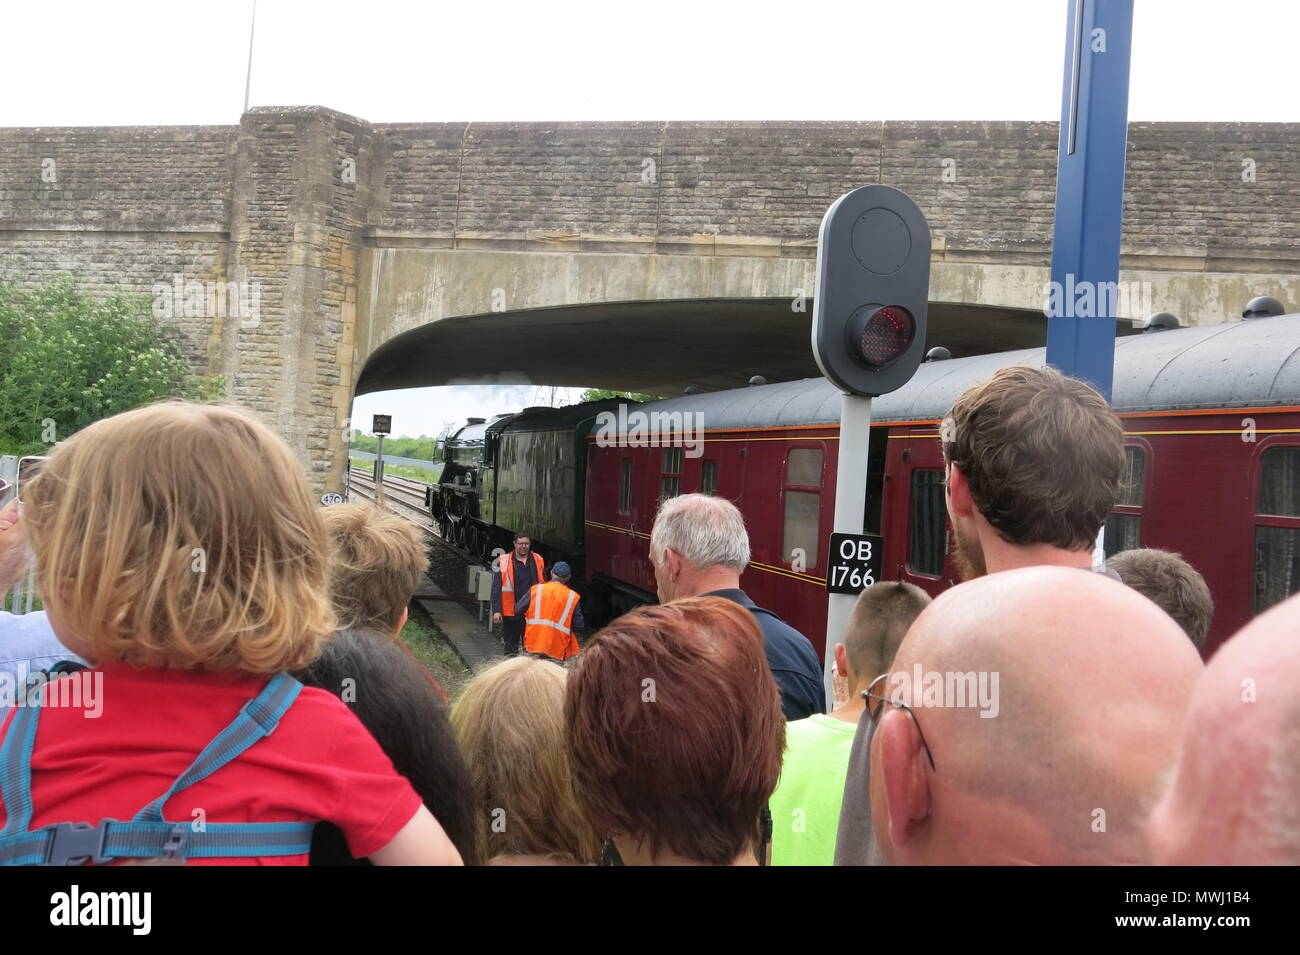 Crowds of onlookers on the platform at Oxford Parkway greet the Flying Scotsman at its 20 minute water stop : Tour of the Chilterns, 31 May 2018 - Stock Image